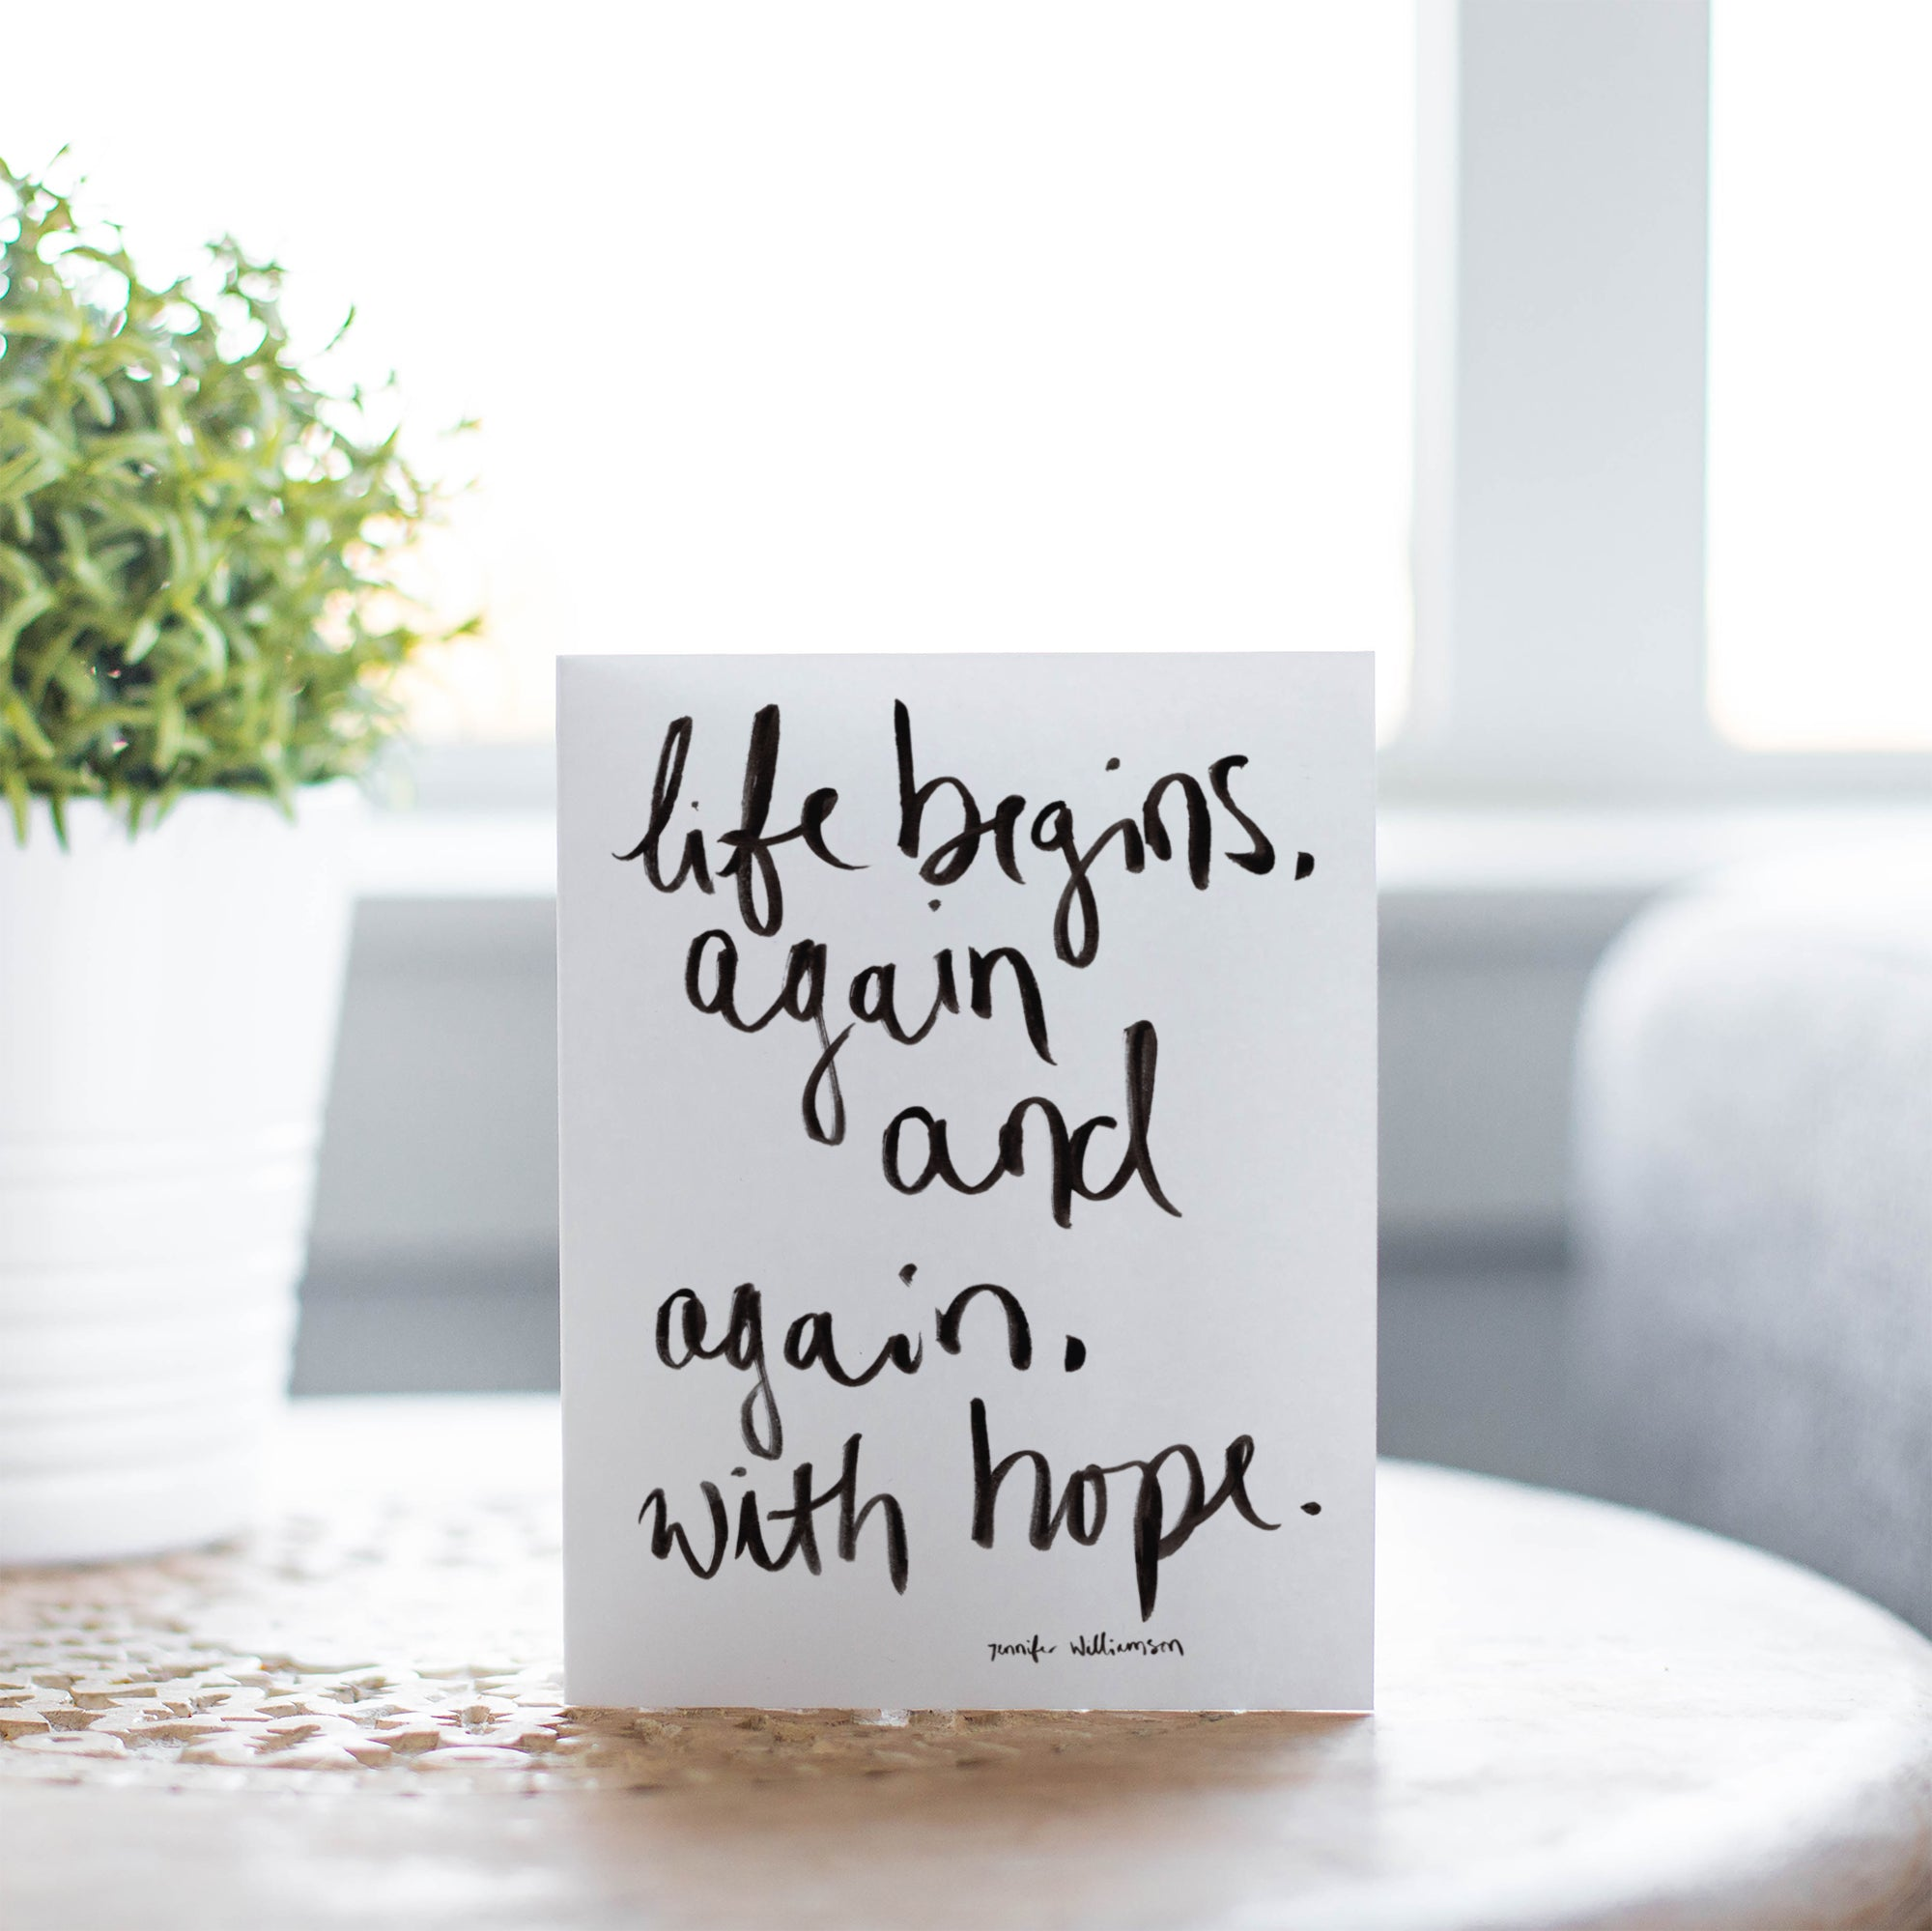 Life Begins With Hope Hand Lettered Encouragement Card